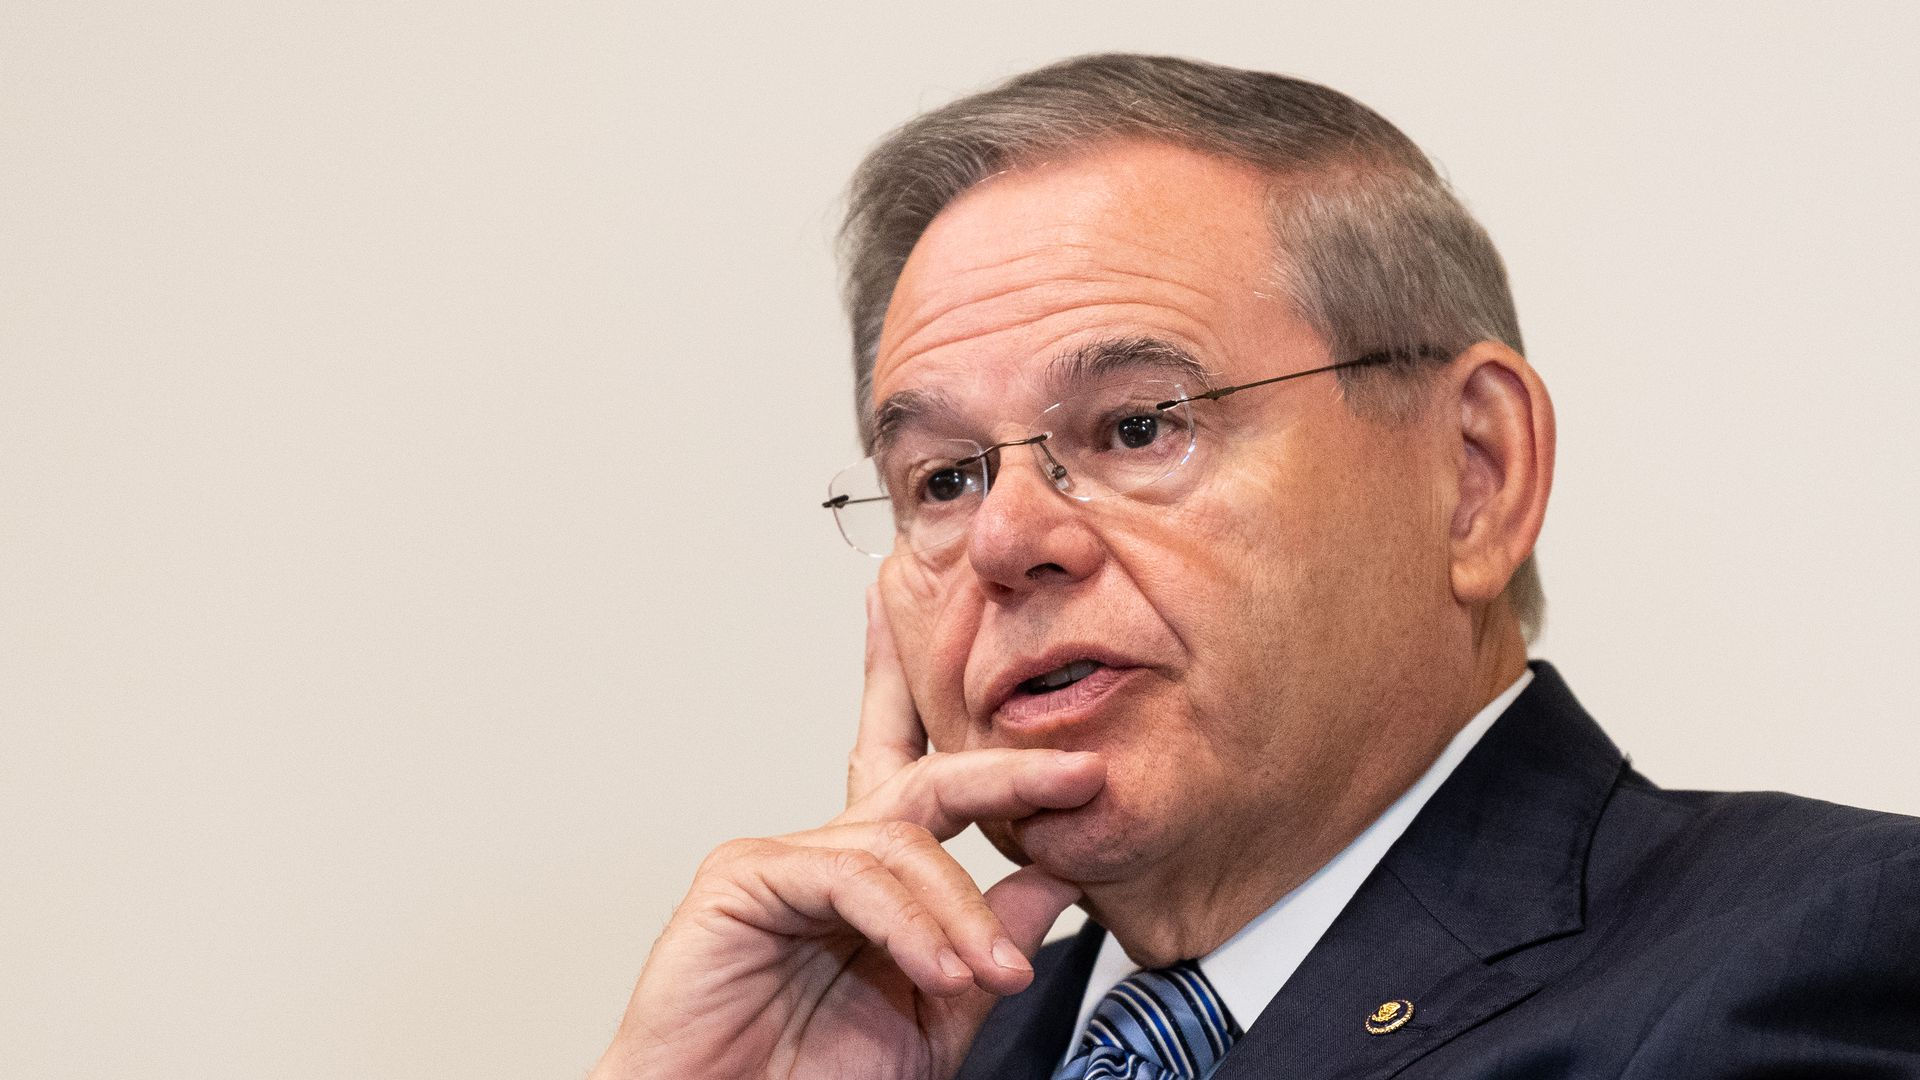 U.S. Senator Bob Menendez. Photo: Michael Brochstein/SOPA Images/LightRocket via Getty Images